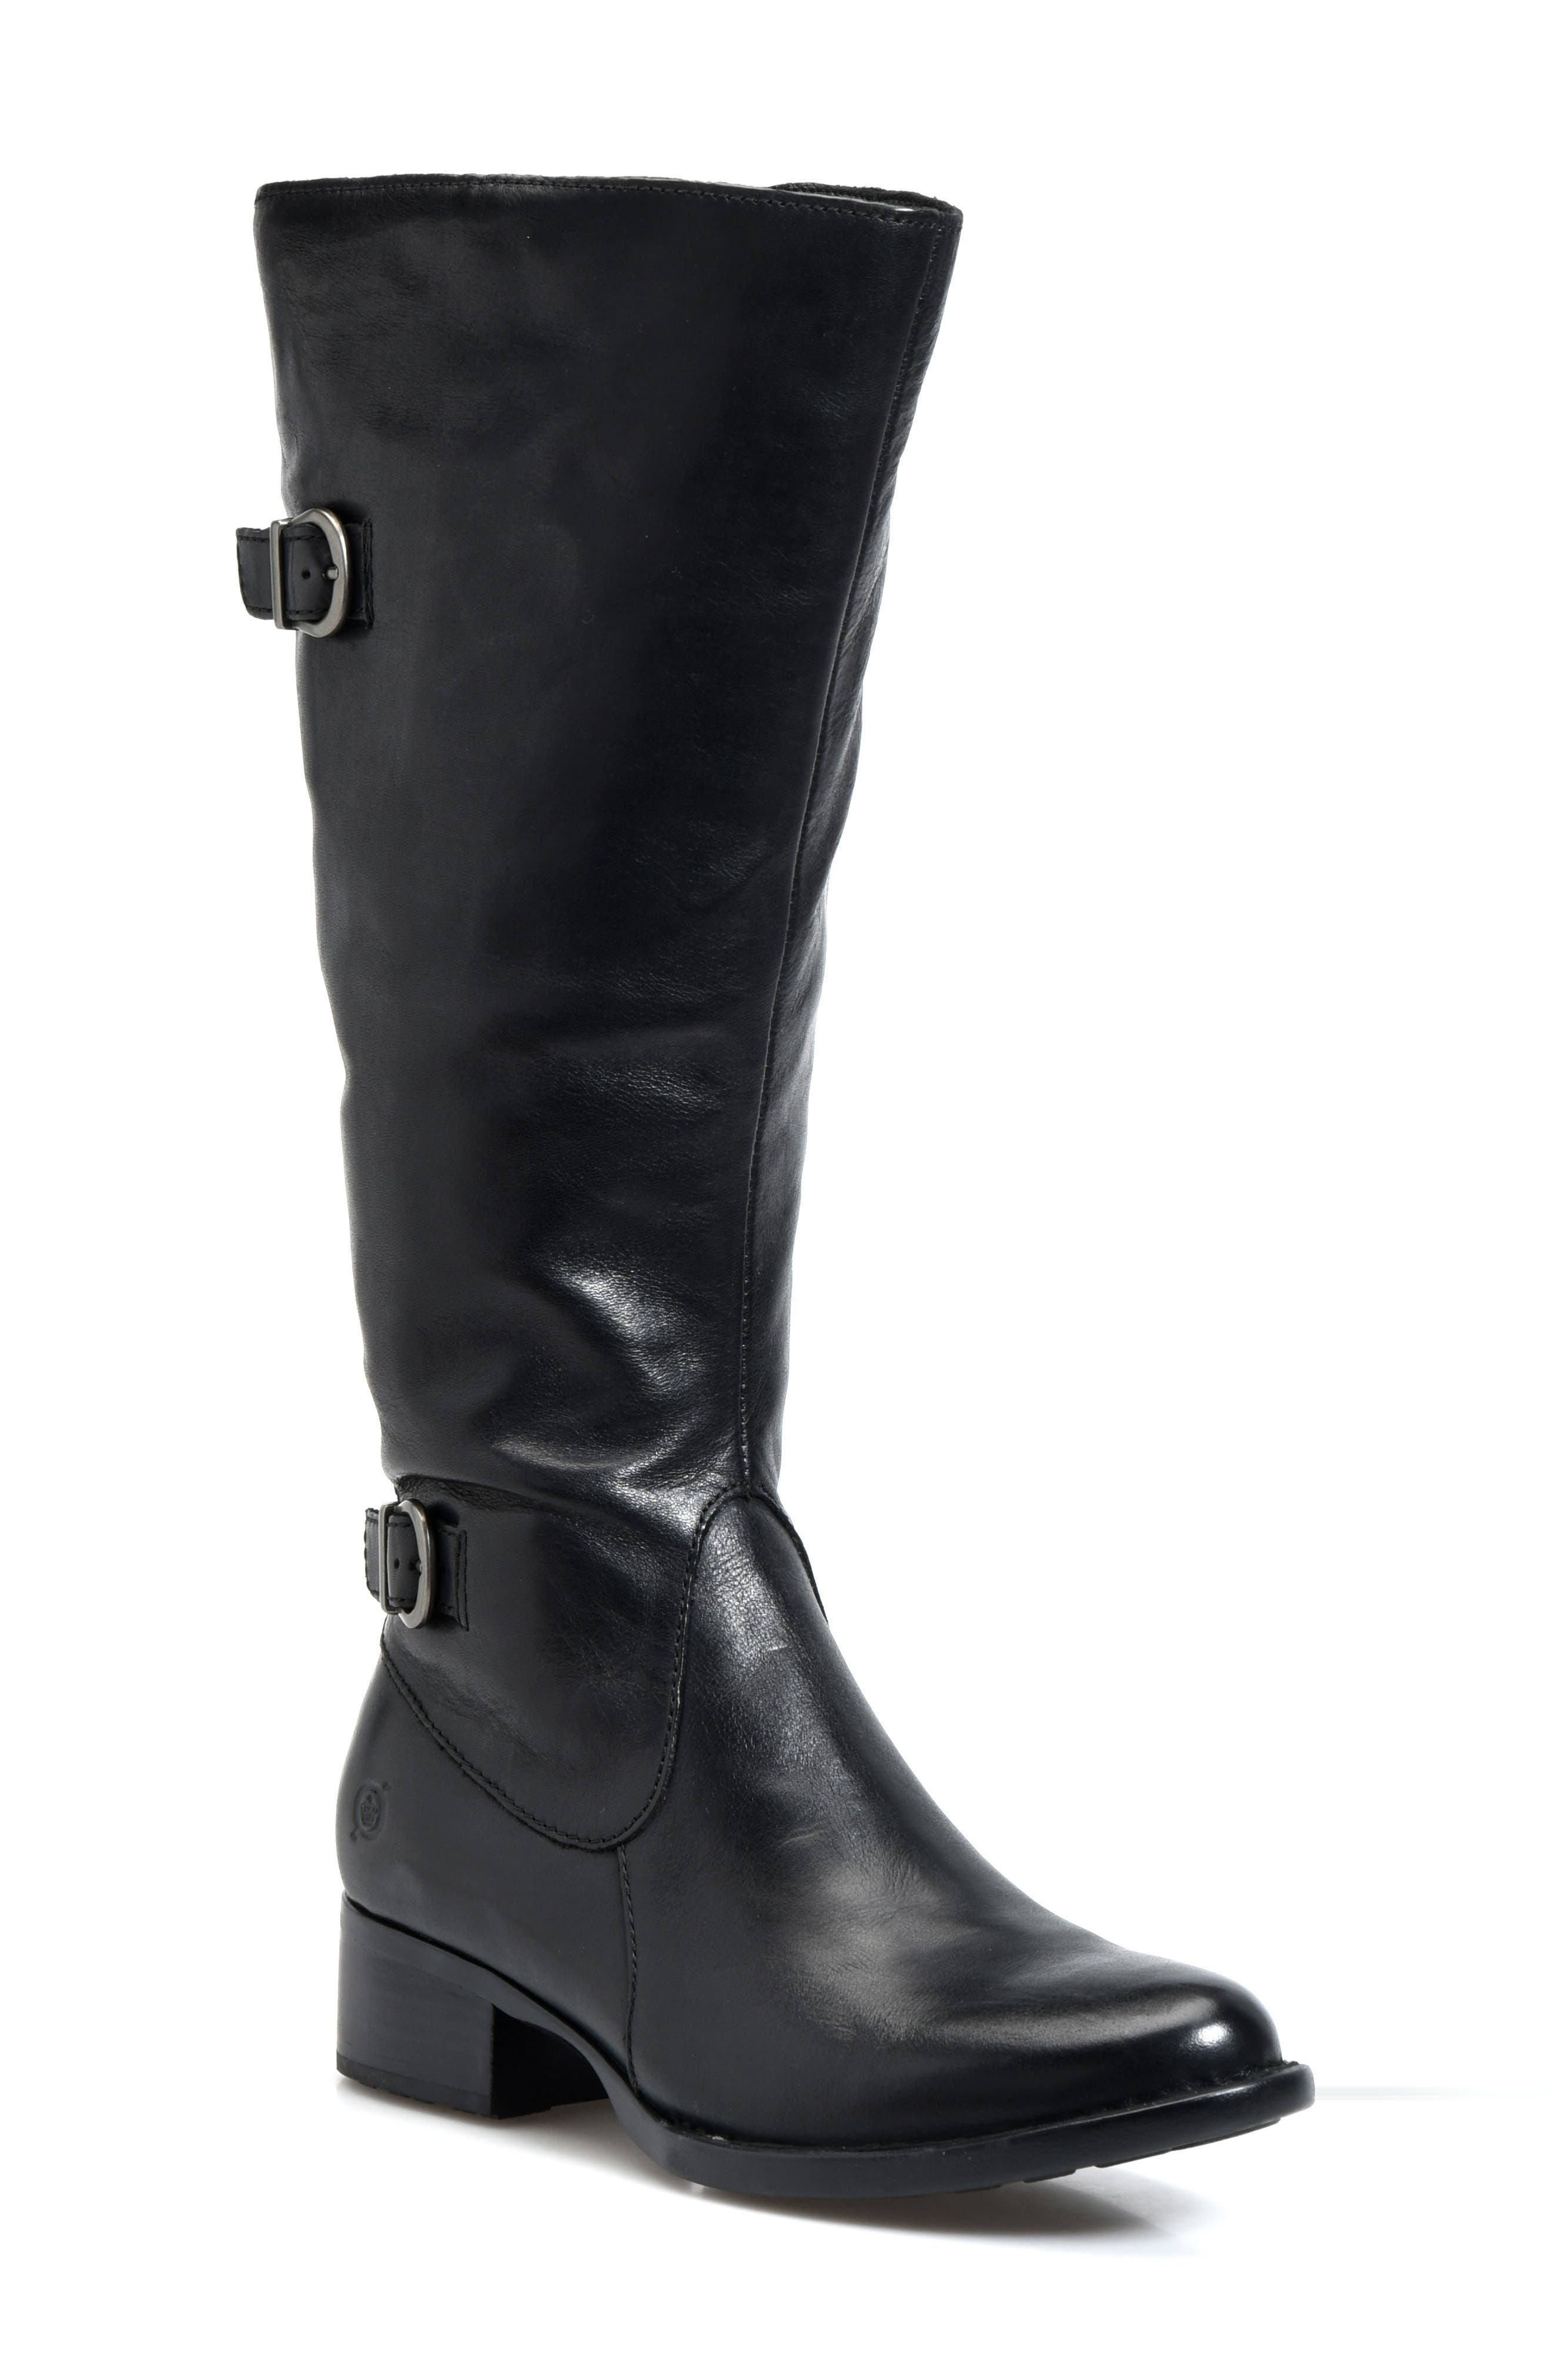 B?rn Gibb Knee High Riding Boot, Black